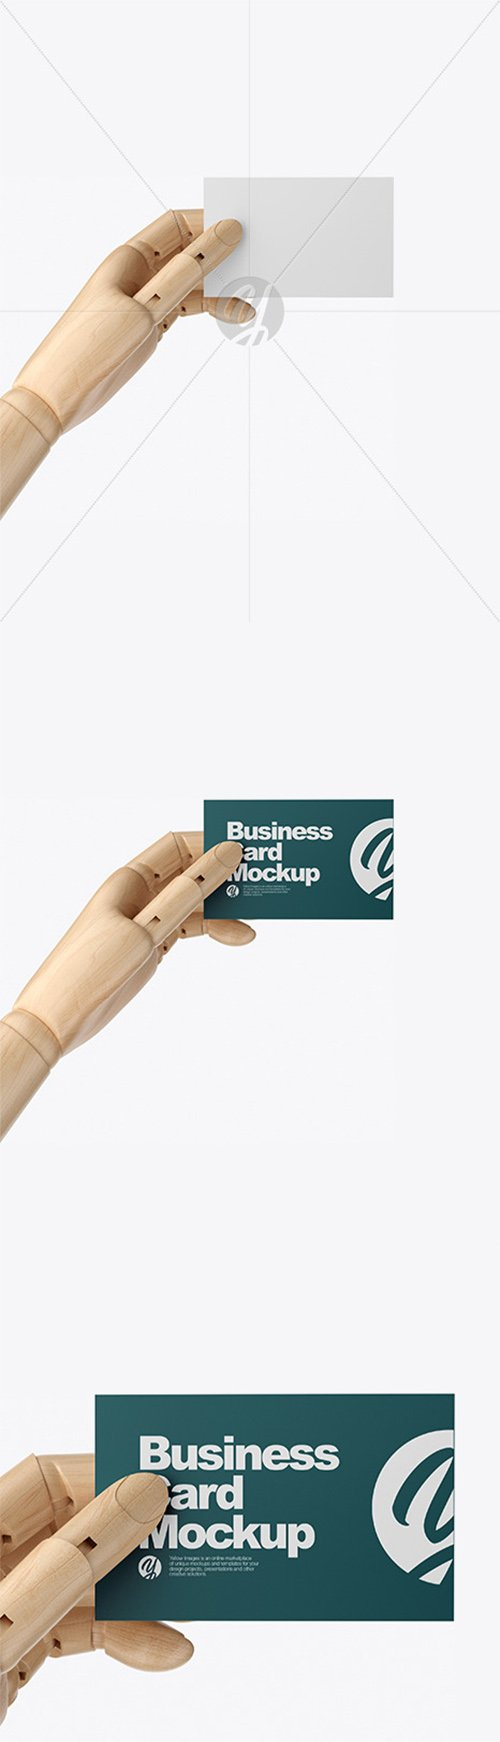 Wooden Hand With Business Card Mockup 60218 TIF